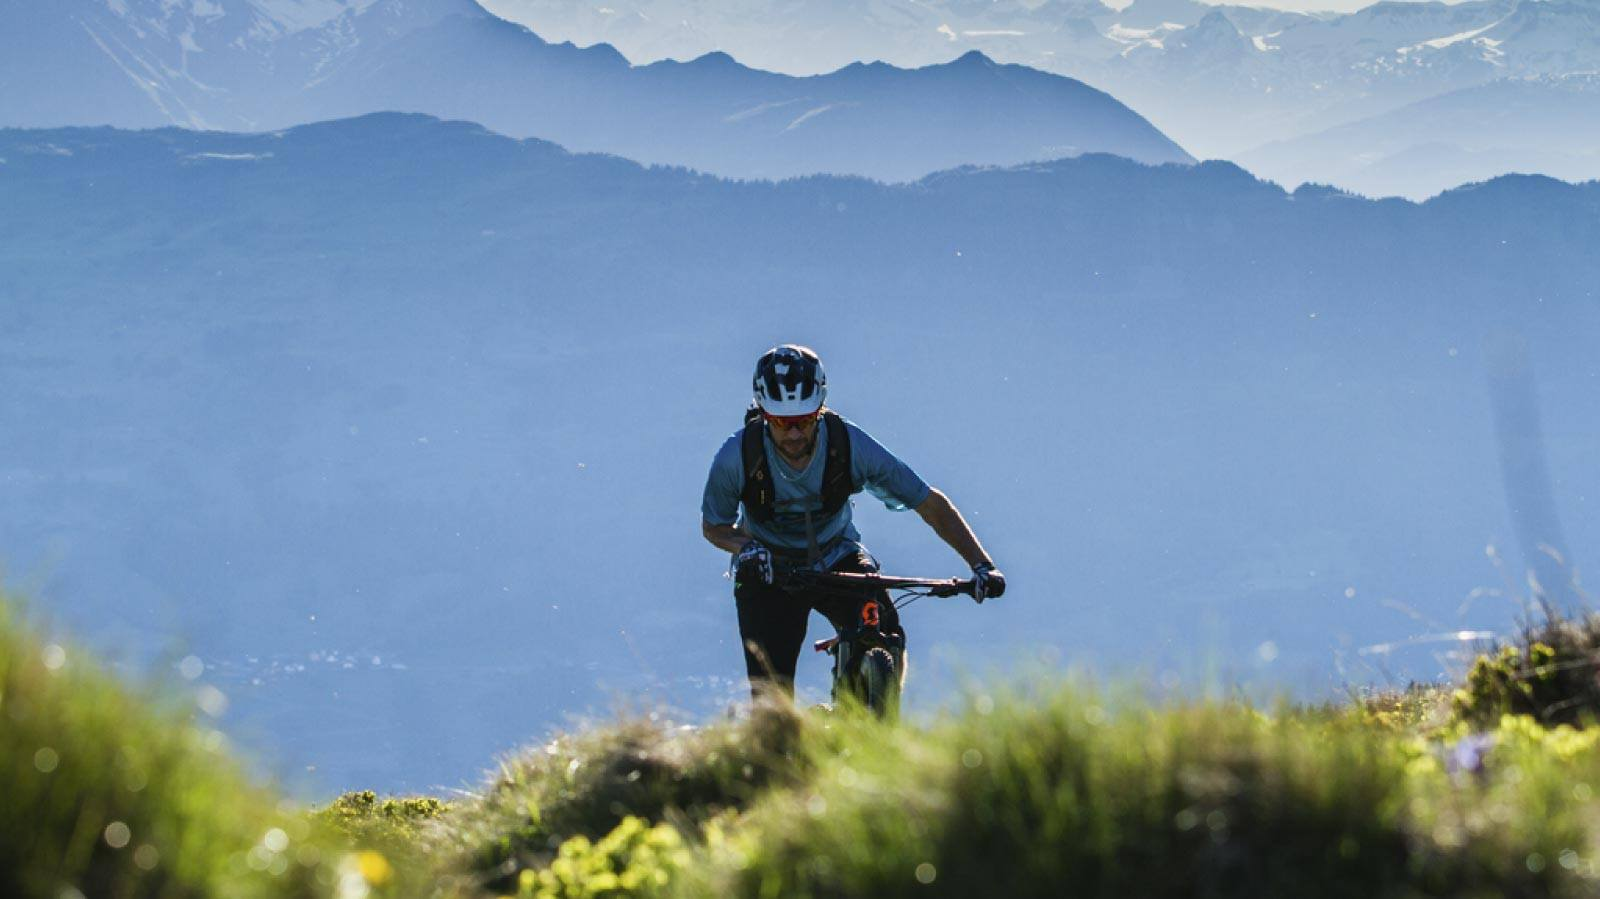 Mountain biker in the mountains